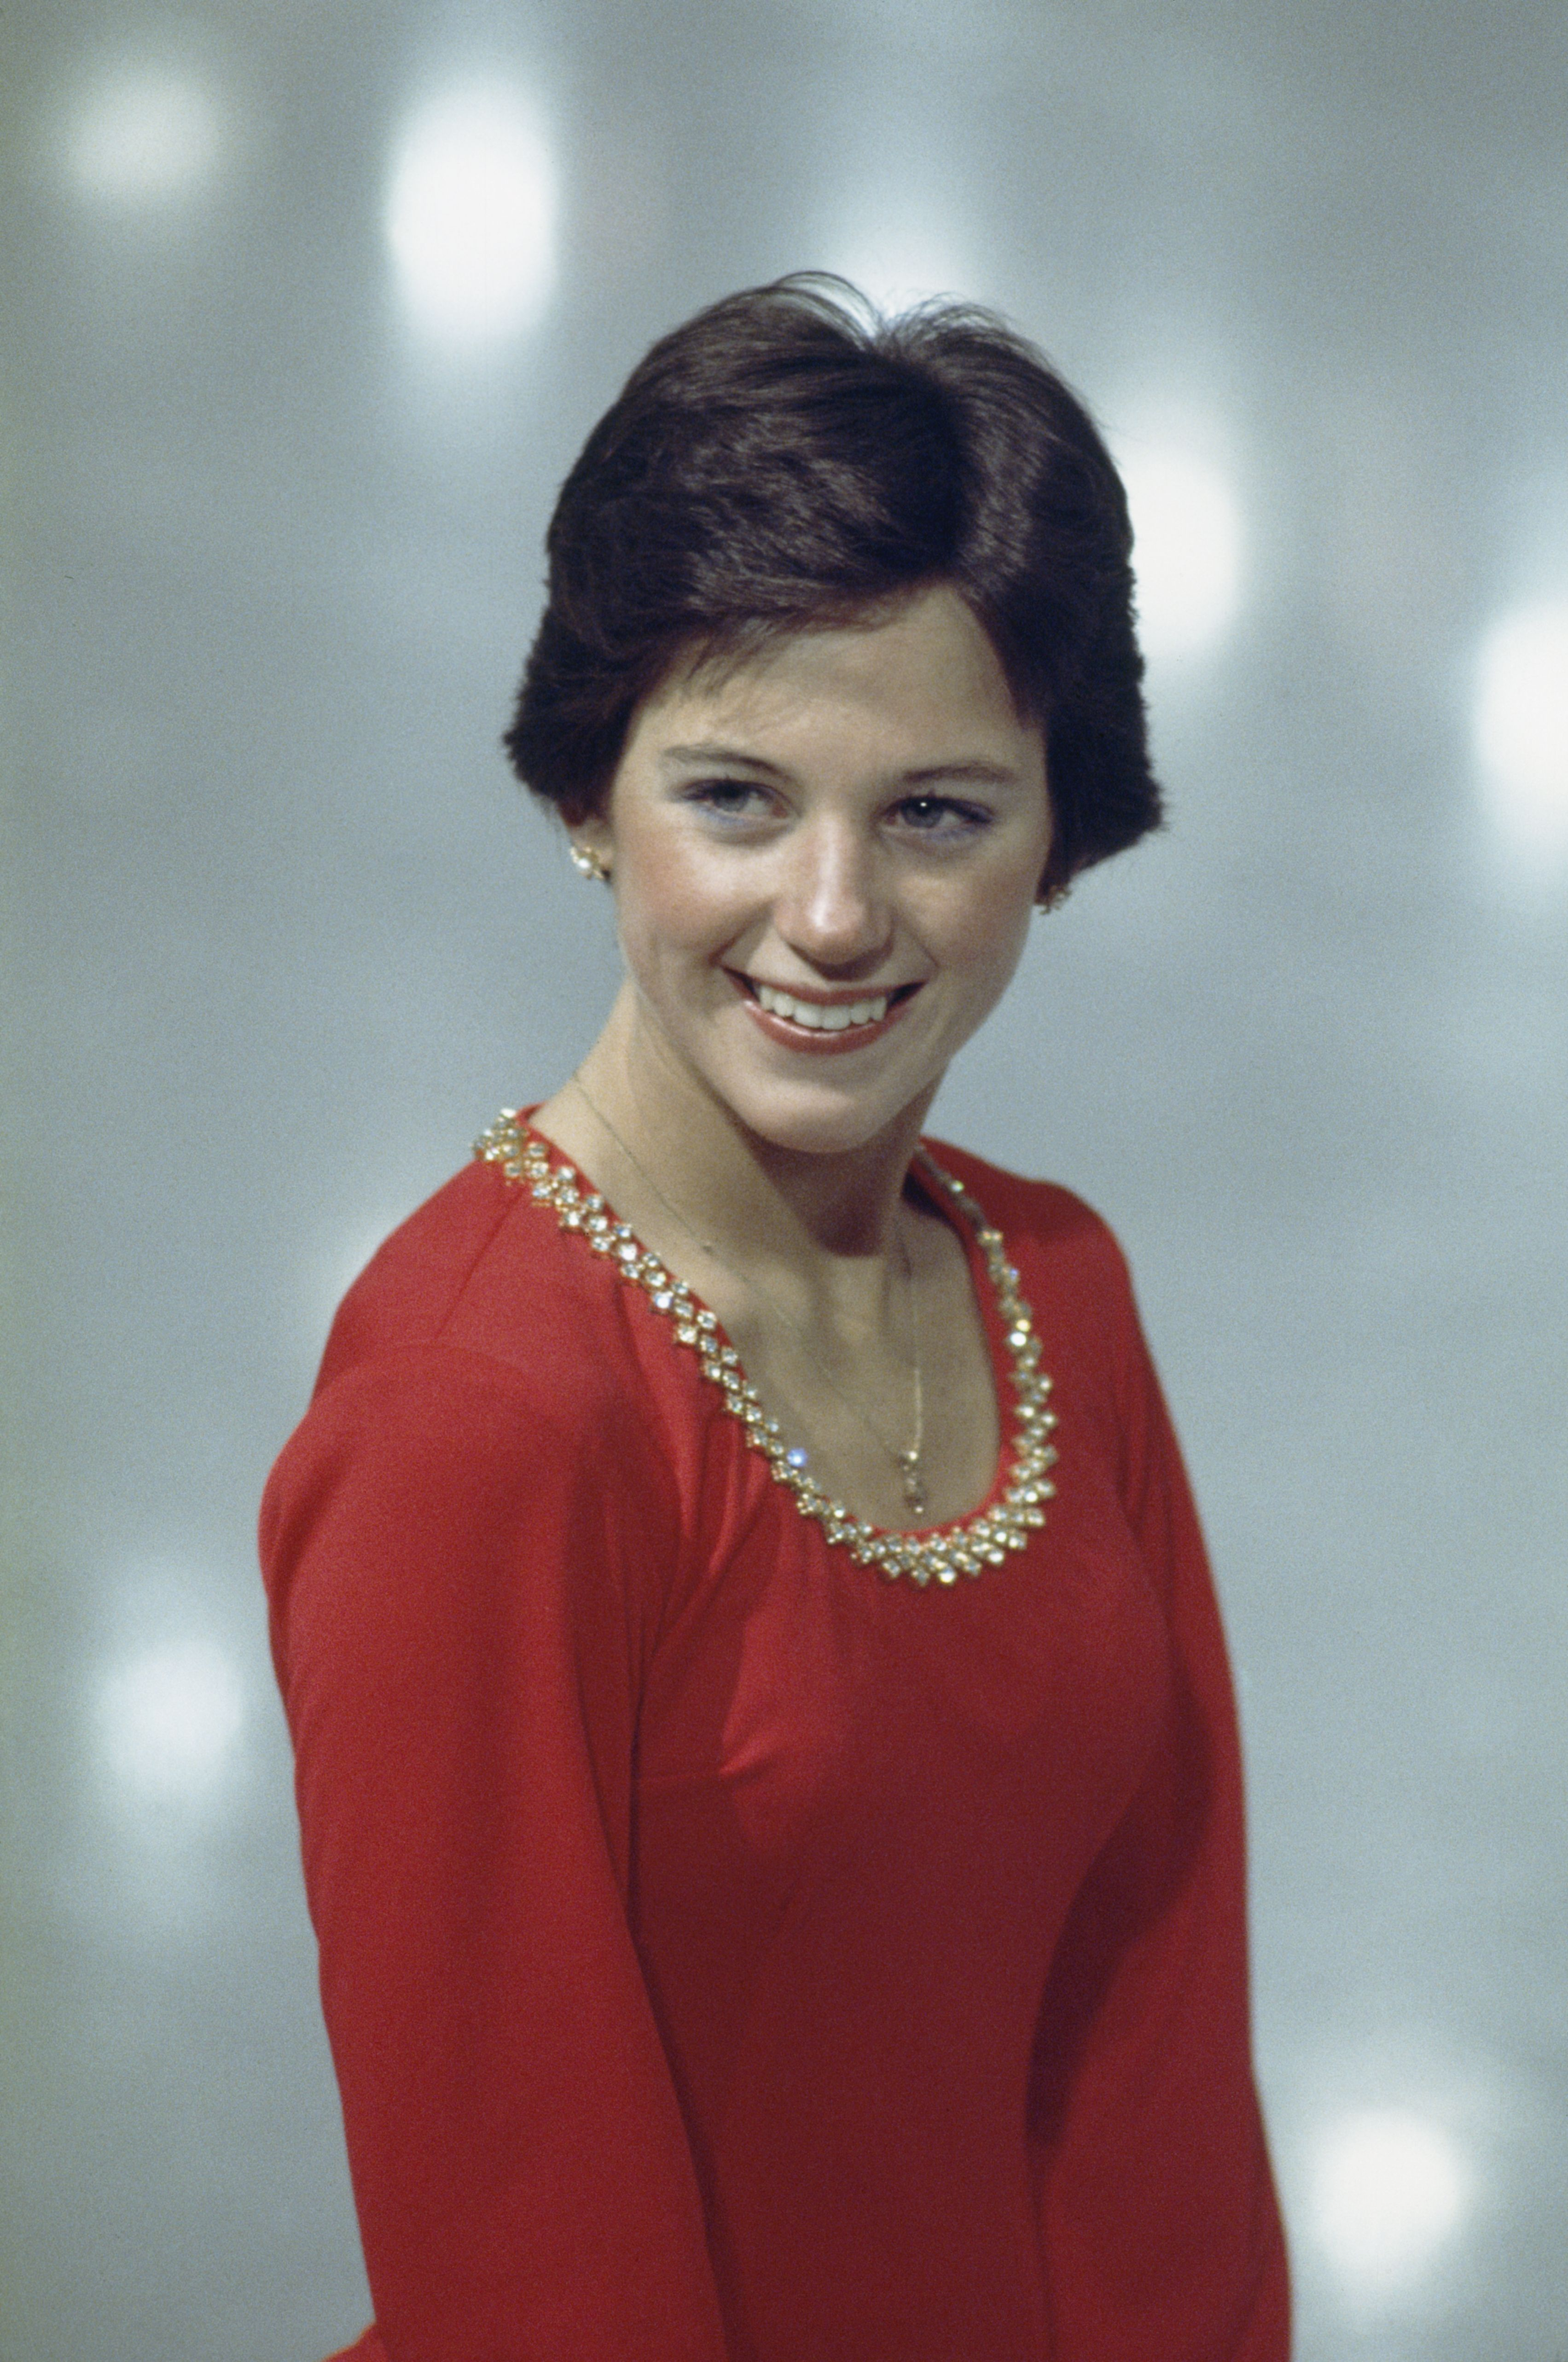 Young Dorothy Hamill Shows Her Smile Dorothy Hamill Popular Hairstyles Trendy Hairstyles